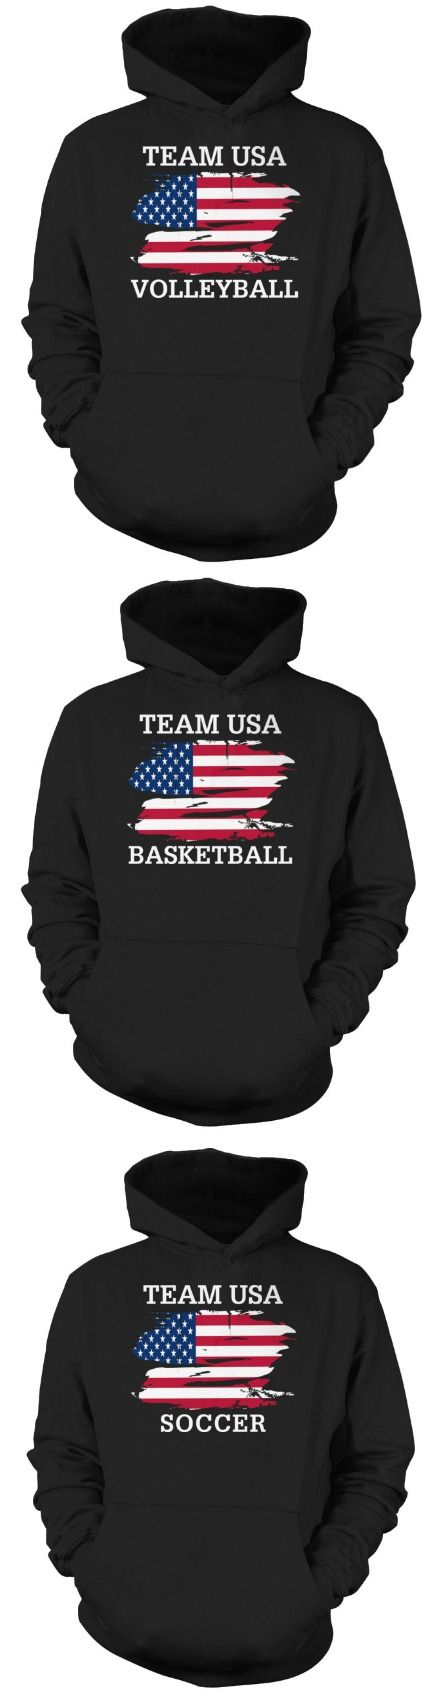 Shop Our Store For Your Sport! Click The Image To Buy It Now or Tag Someone You Want To Buy This For. #TeamUSA